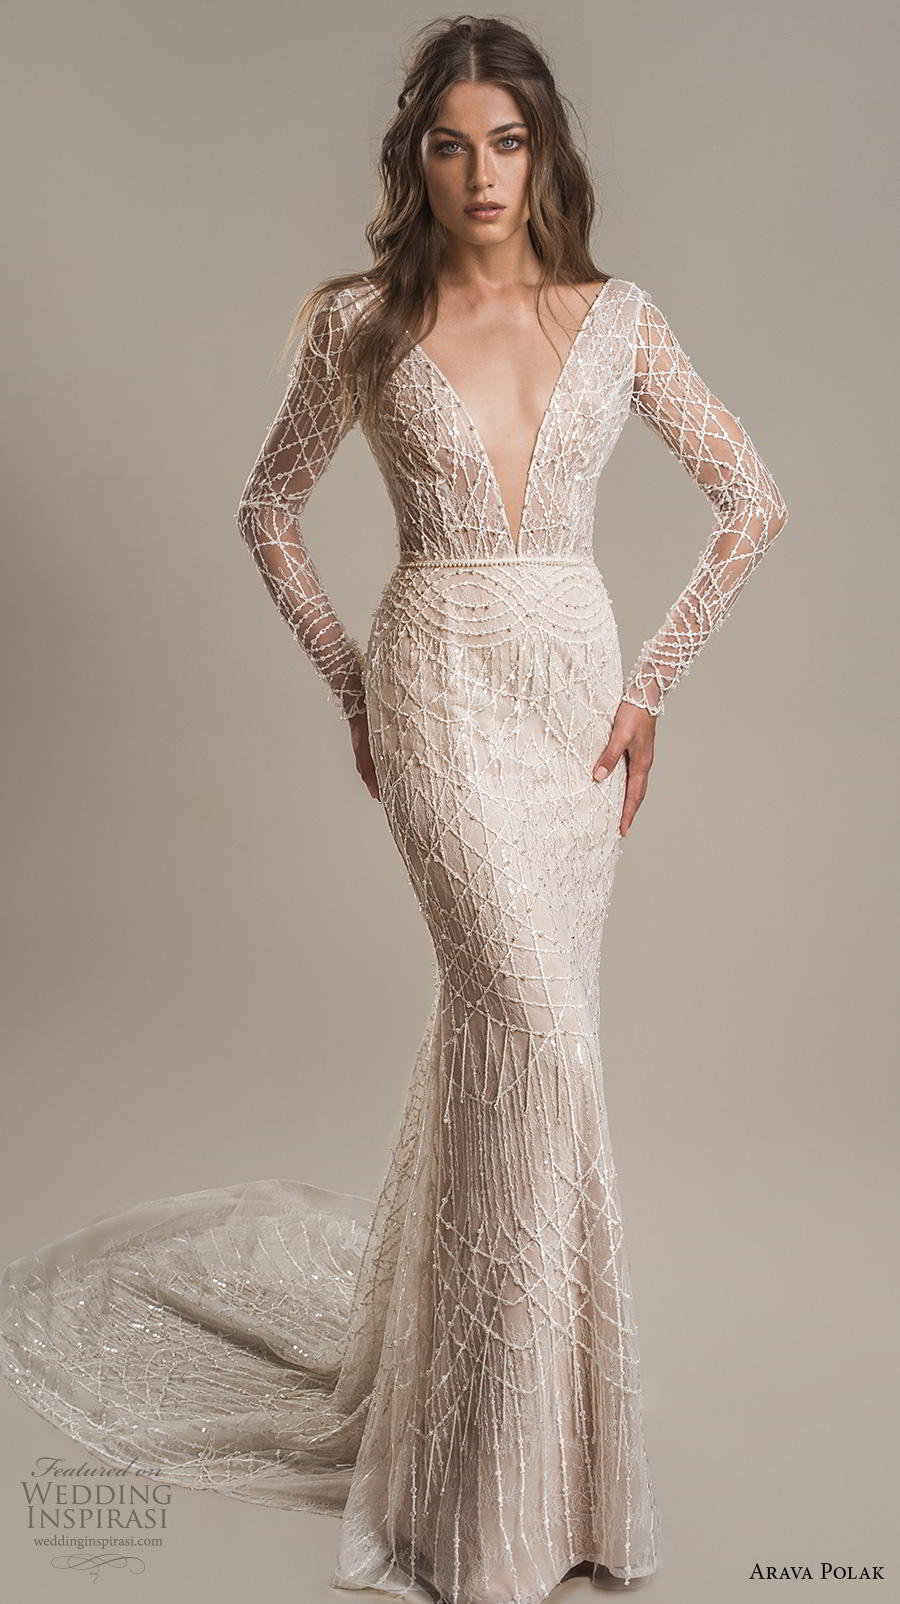 arava polak 2019 bridal long sleeves deep v neck full embellishment sexy glamorous sheath wedding dress backless low v back chapel train (11) mv